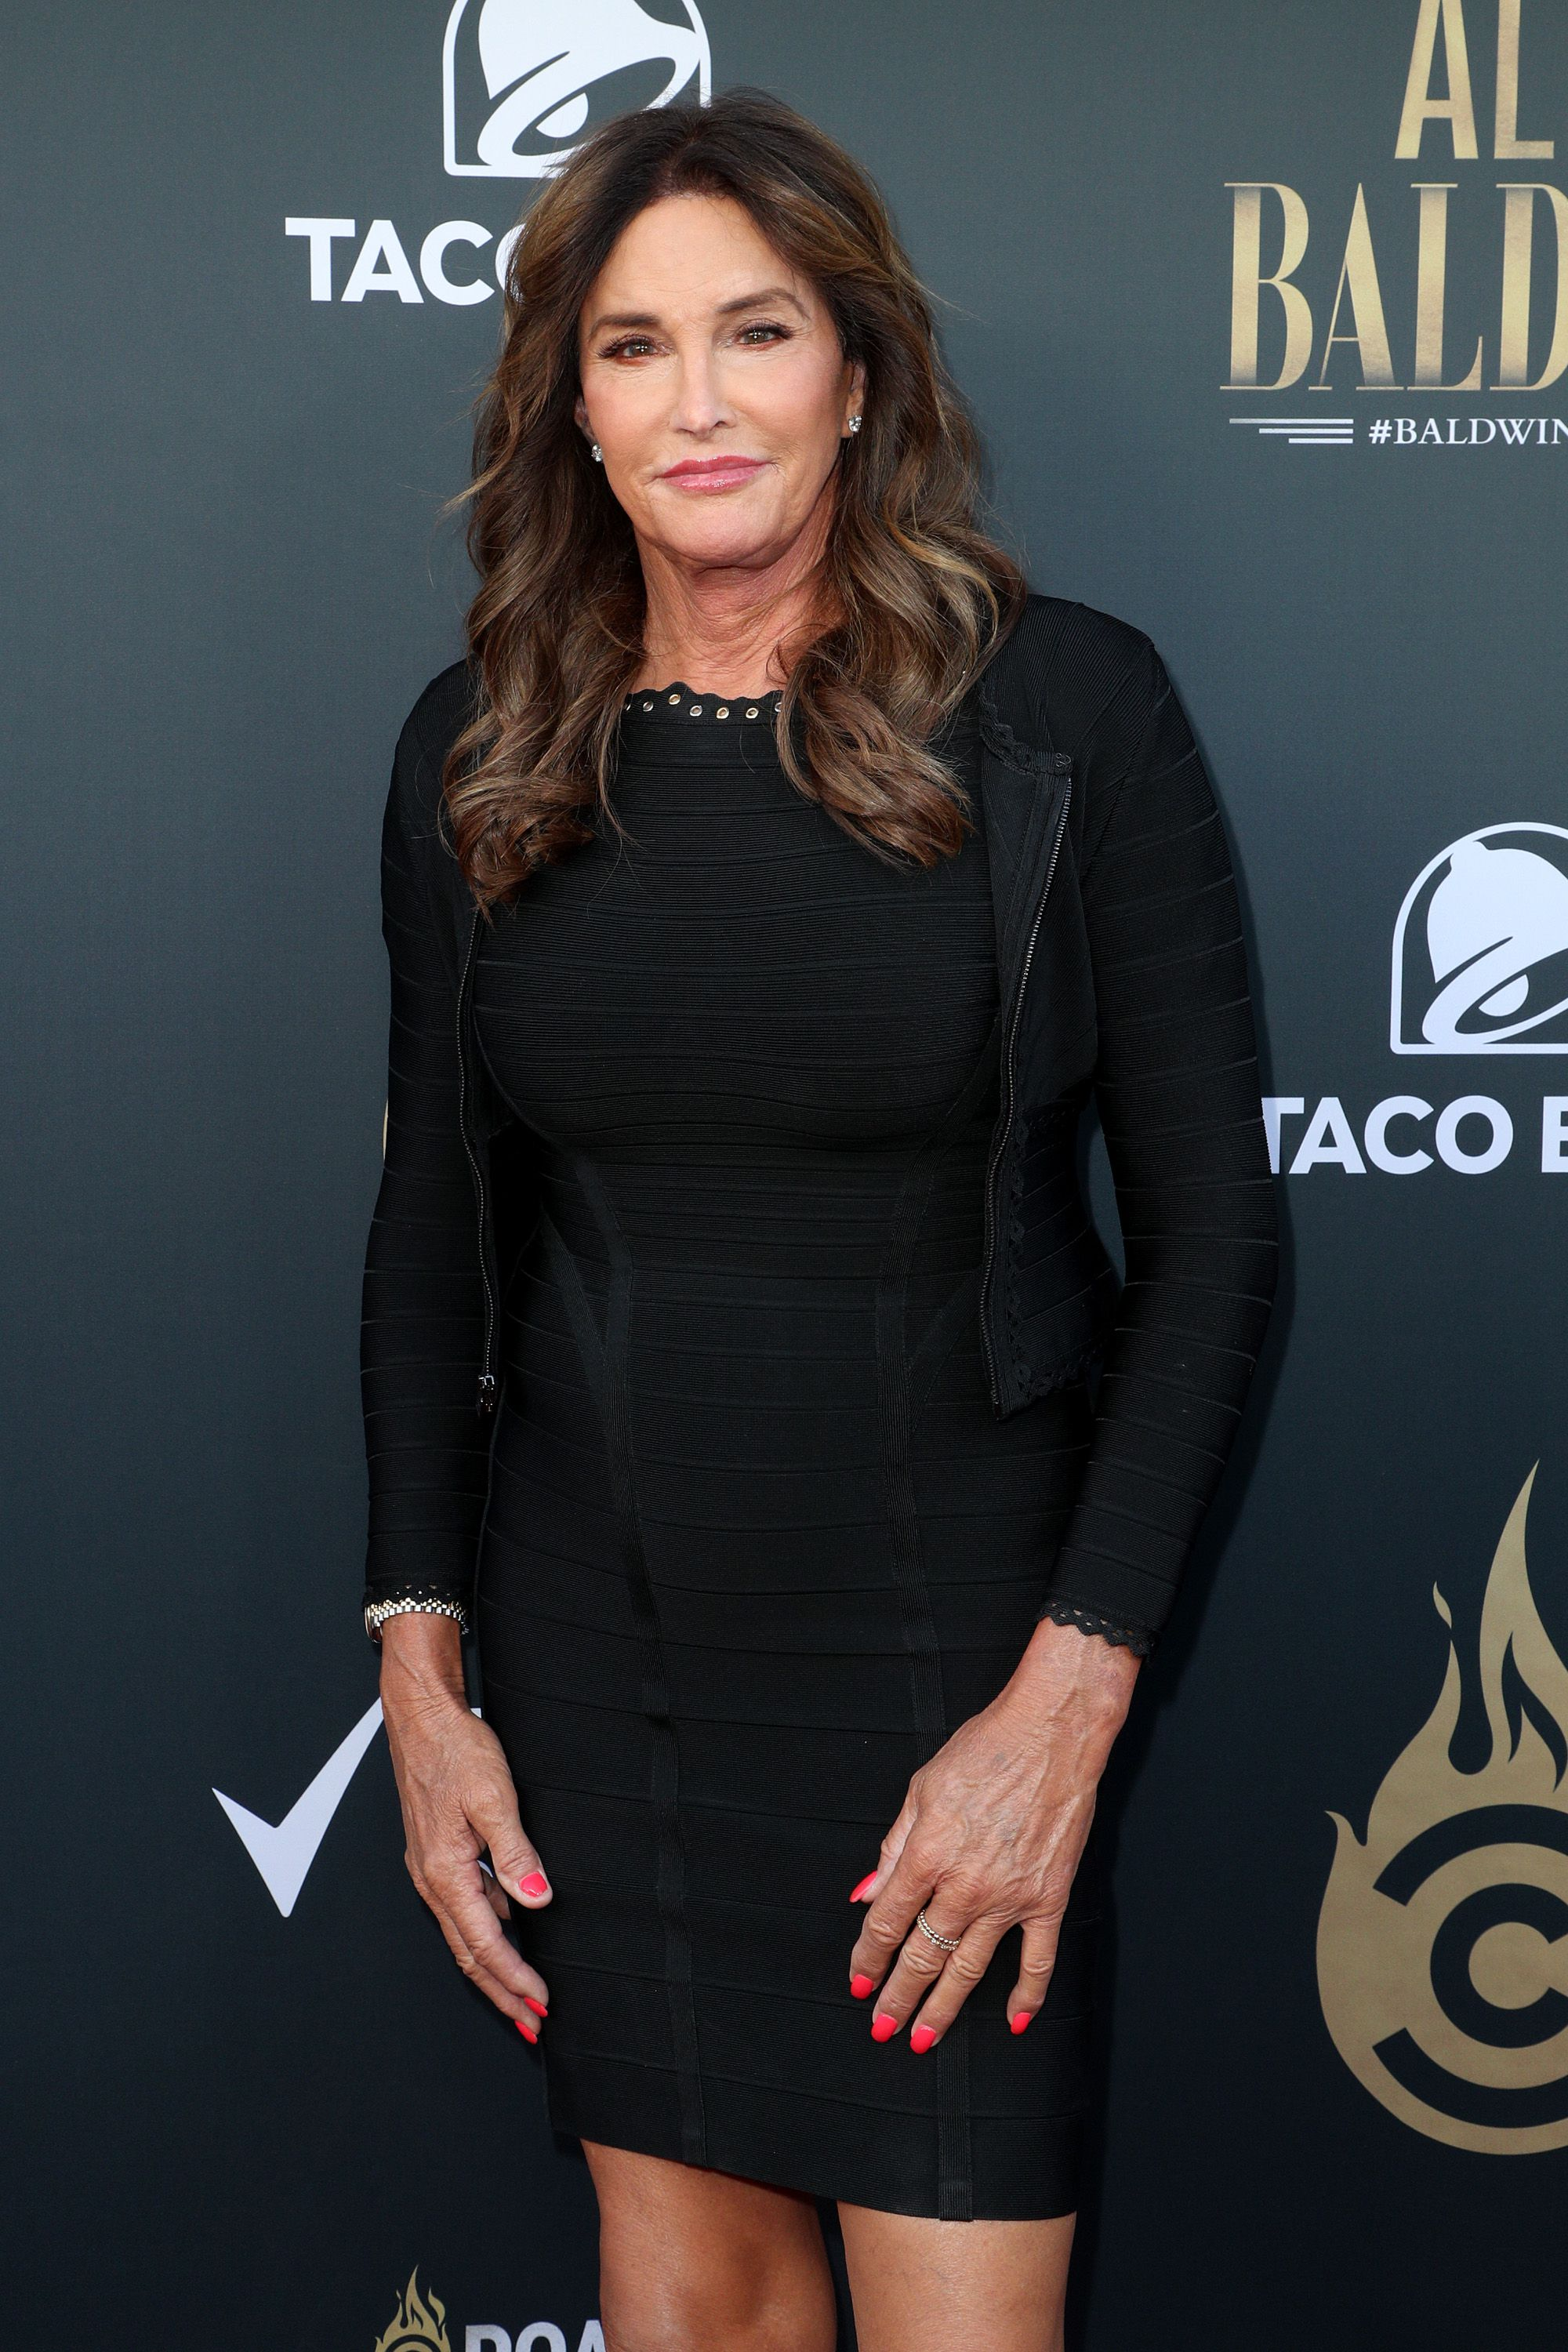 Caitlyn Jenner Is 'More Confident Now' Than Ever Ahead of Her 70th Birthday: 'She Feels Blessed'